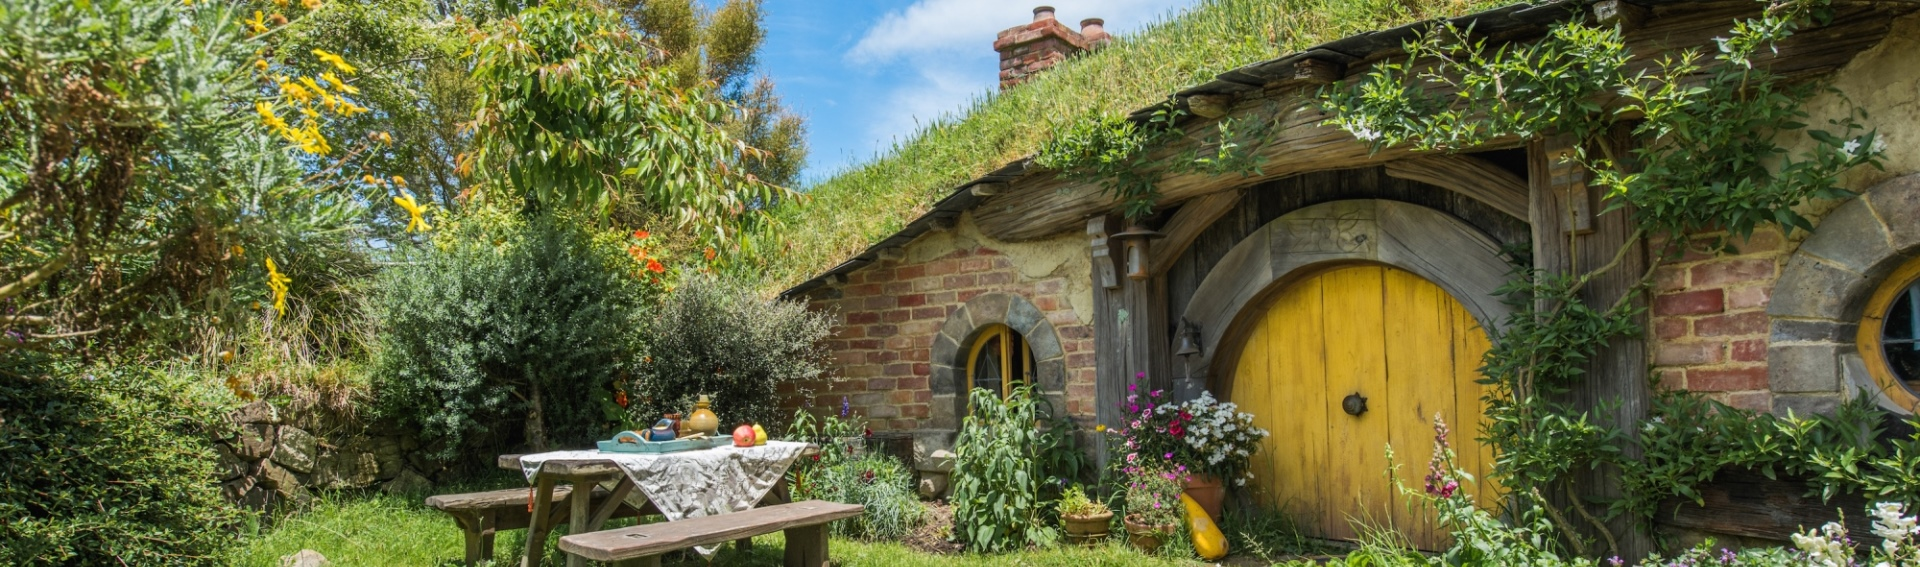 Hobbit Hole Hobbiton Movie Set Tours